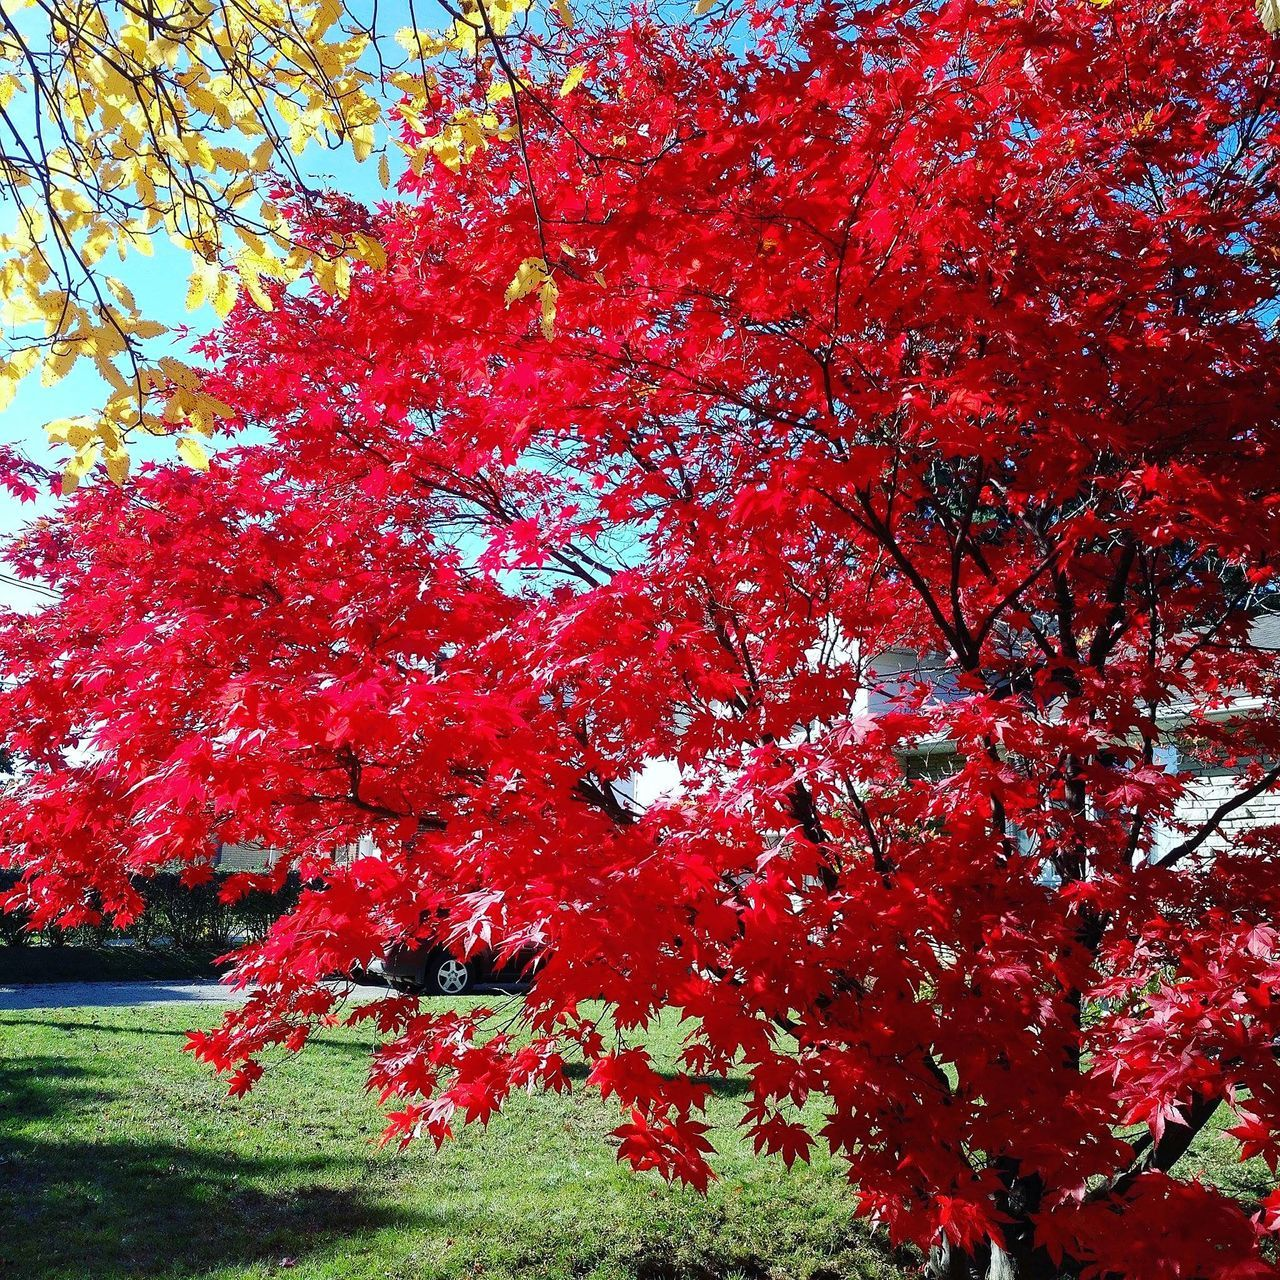 tree, autumn, growth, beauty in nature, nature, red, change, branch, blossom, leaf, no people, maple tree, low angle view, tranquility, outdoors, day, flower, springtime, scenics, maple leaf, fragility, freshness, sky, maple